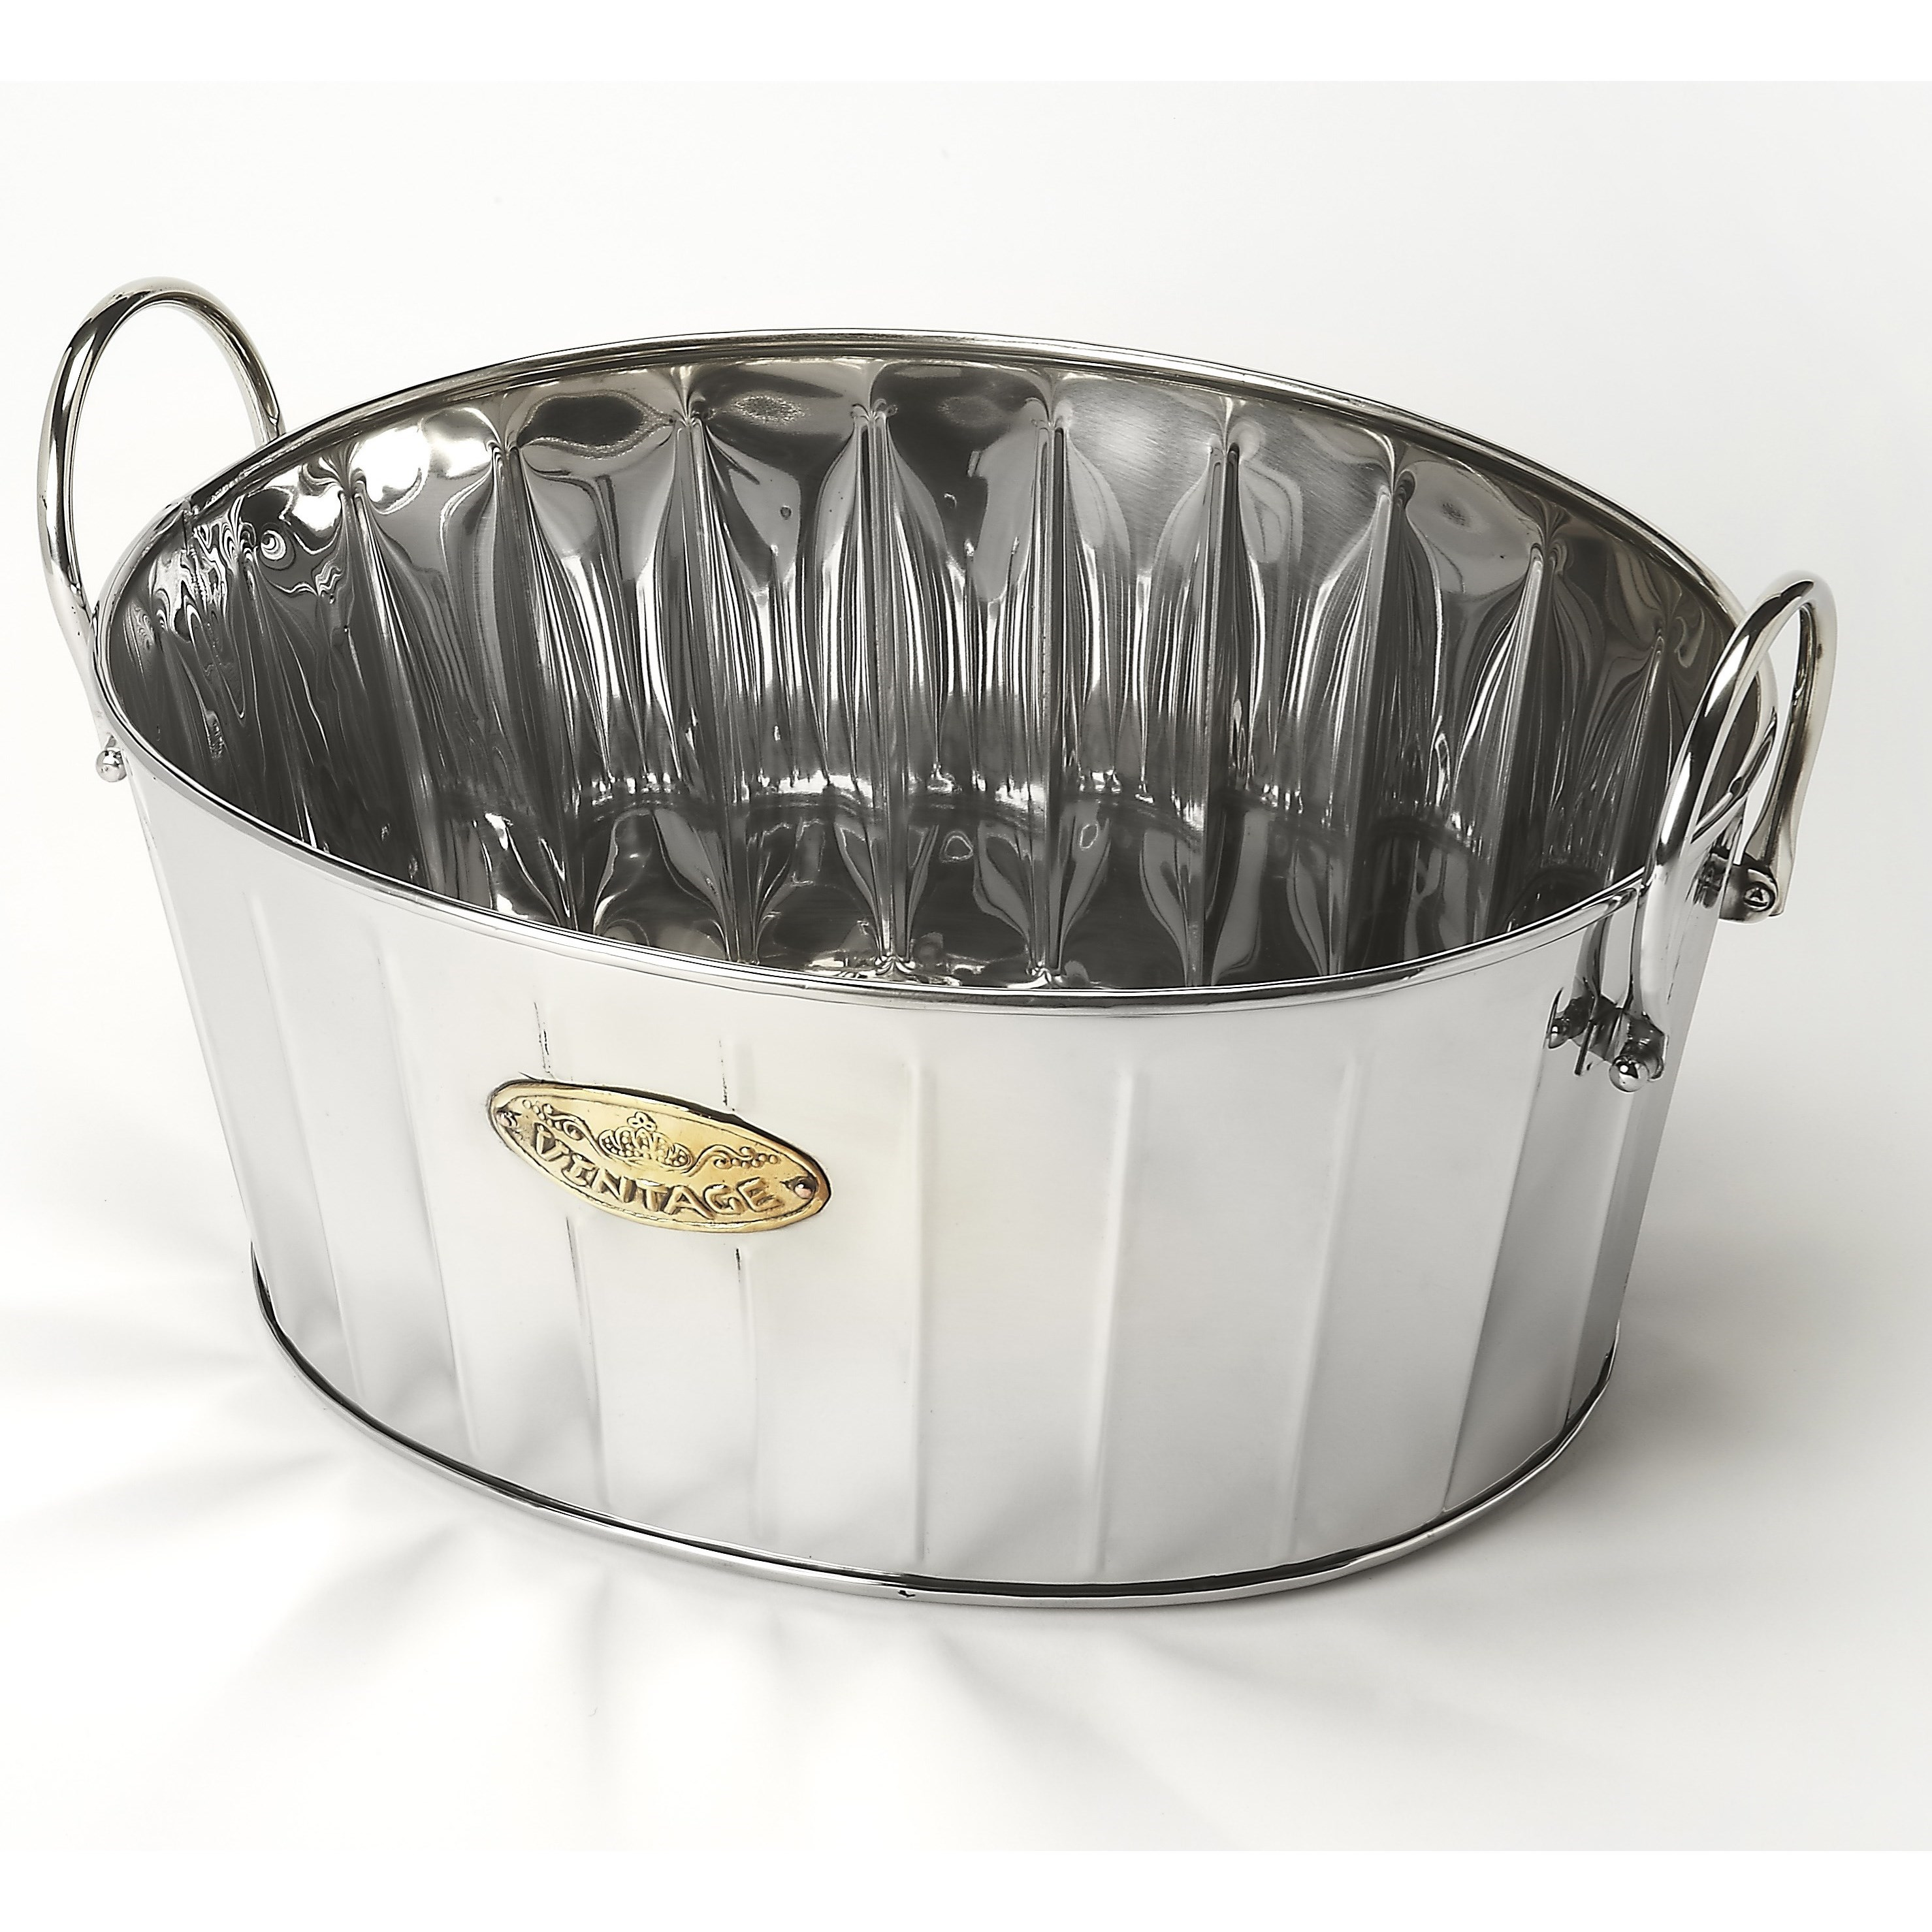 Butler Specialty Company Hors D'oeuvres Wine Bucket - Item Number: 6196016